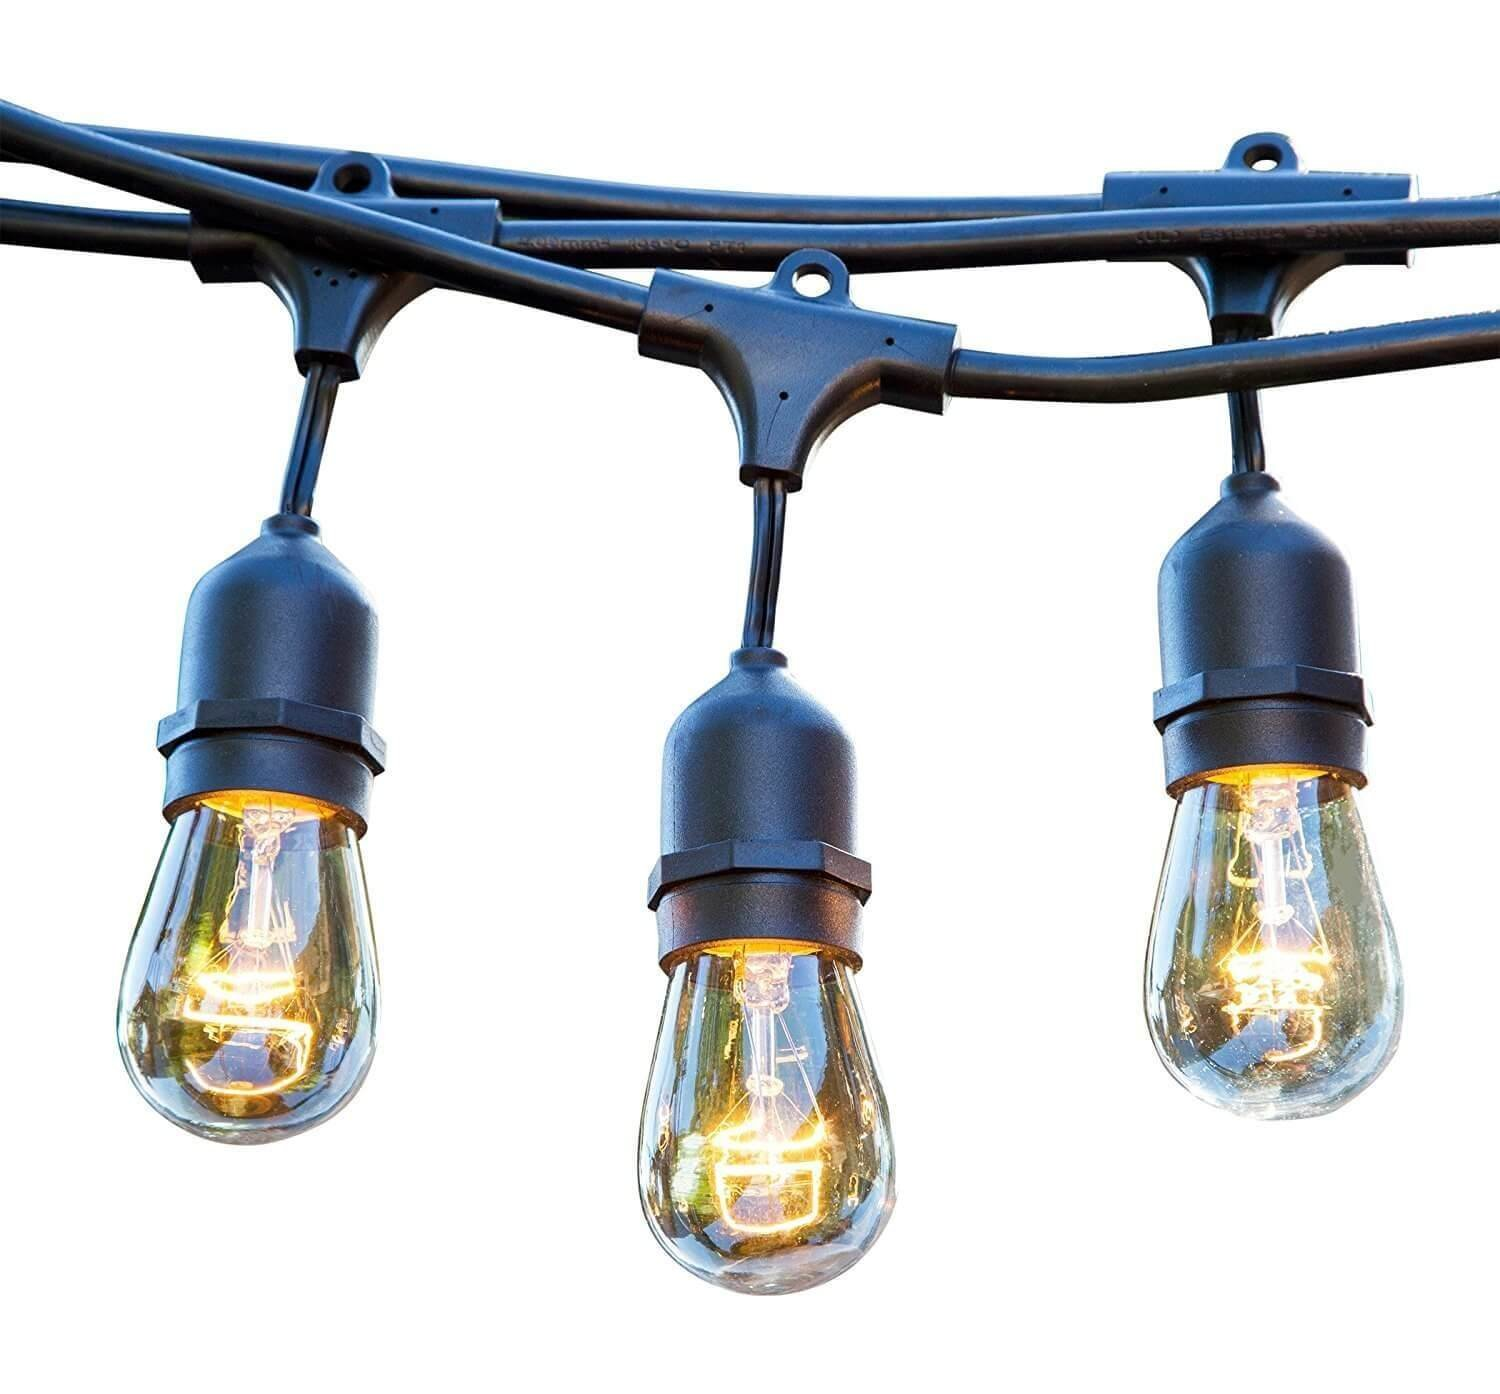 a55943f5de7 48 FT Weatherproof Outdoor String Lights - 15 Hanging Sockets - Perfect  Patio Lights - Commercial